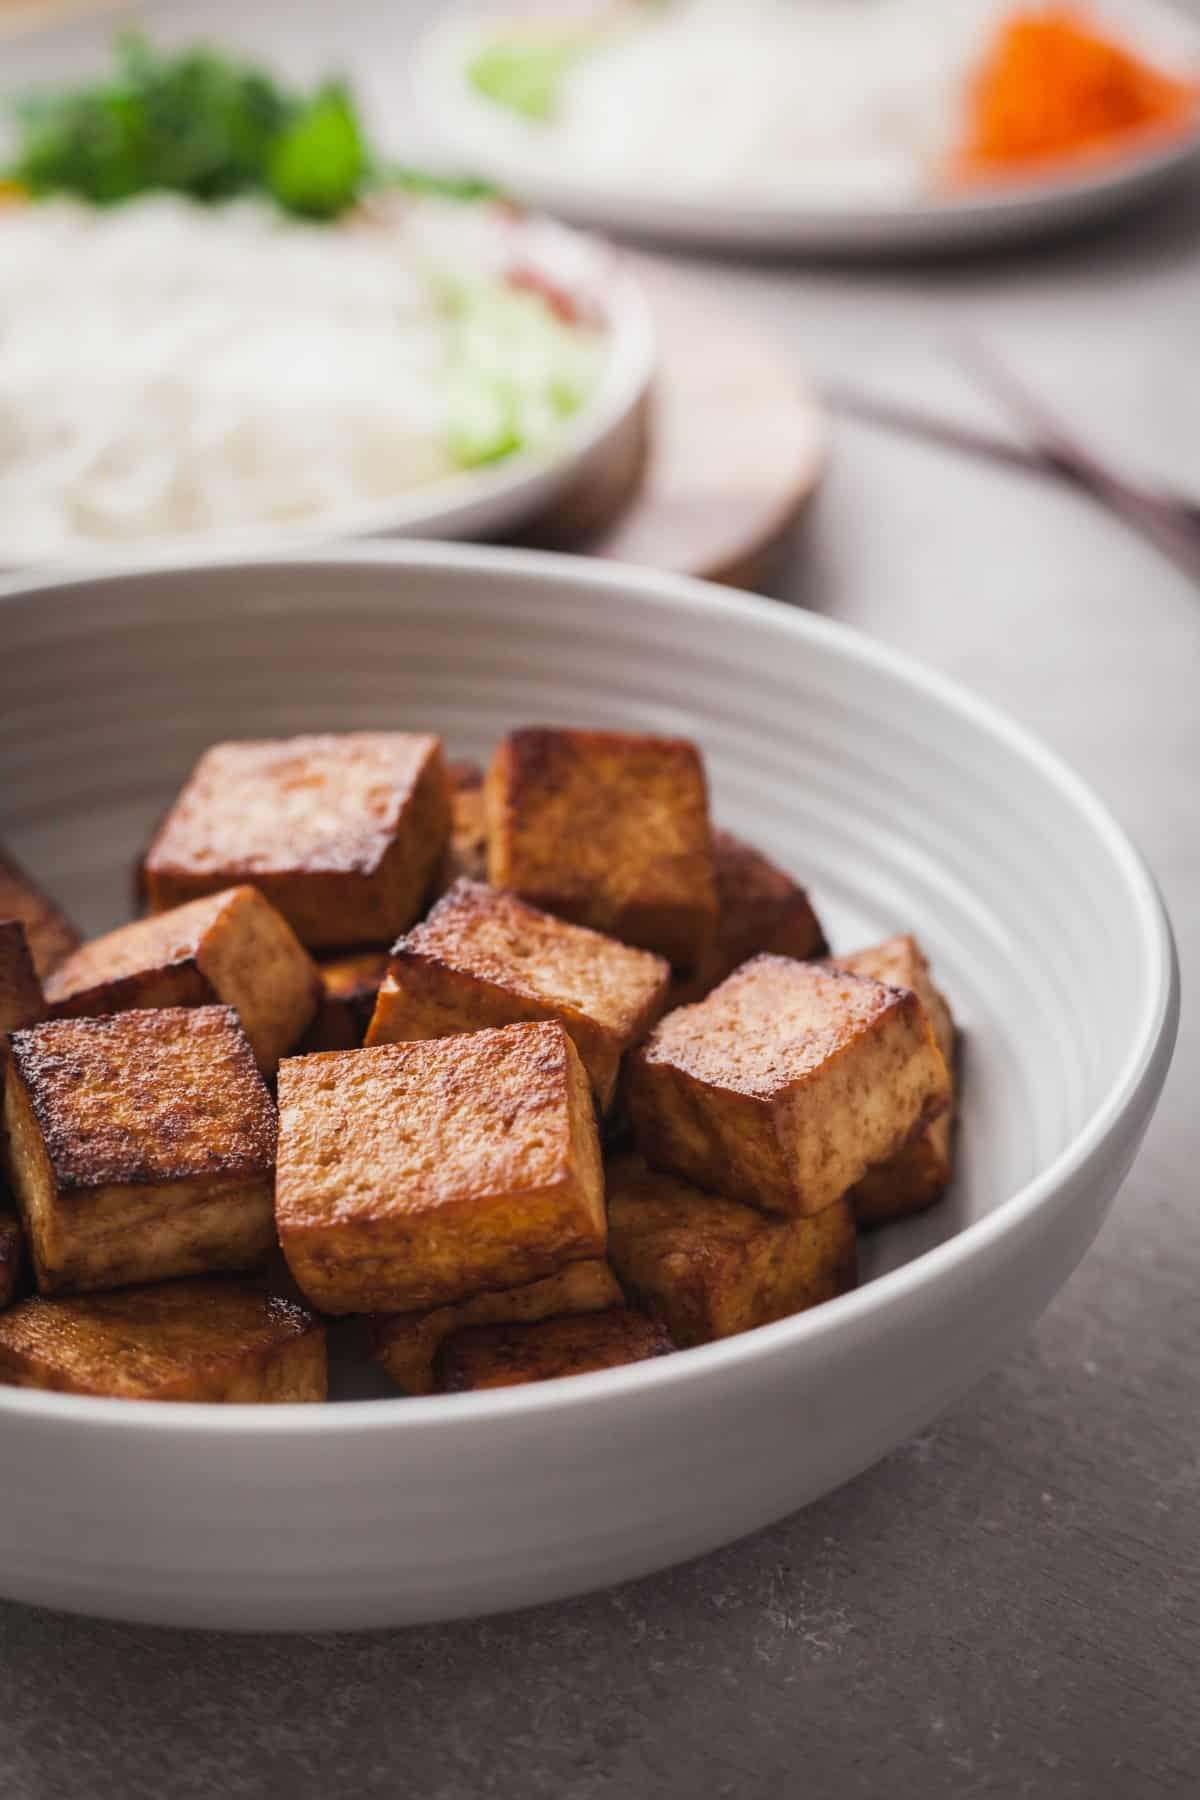 perfectly cooked tofu in a light blue bowl